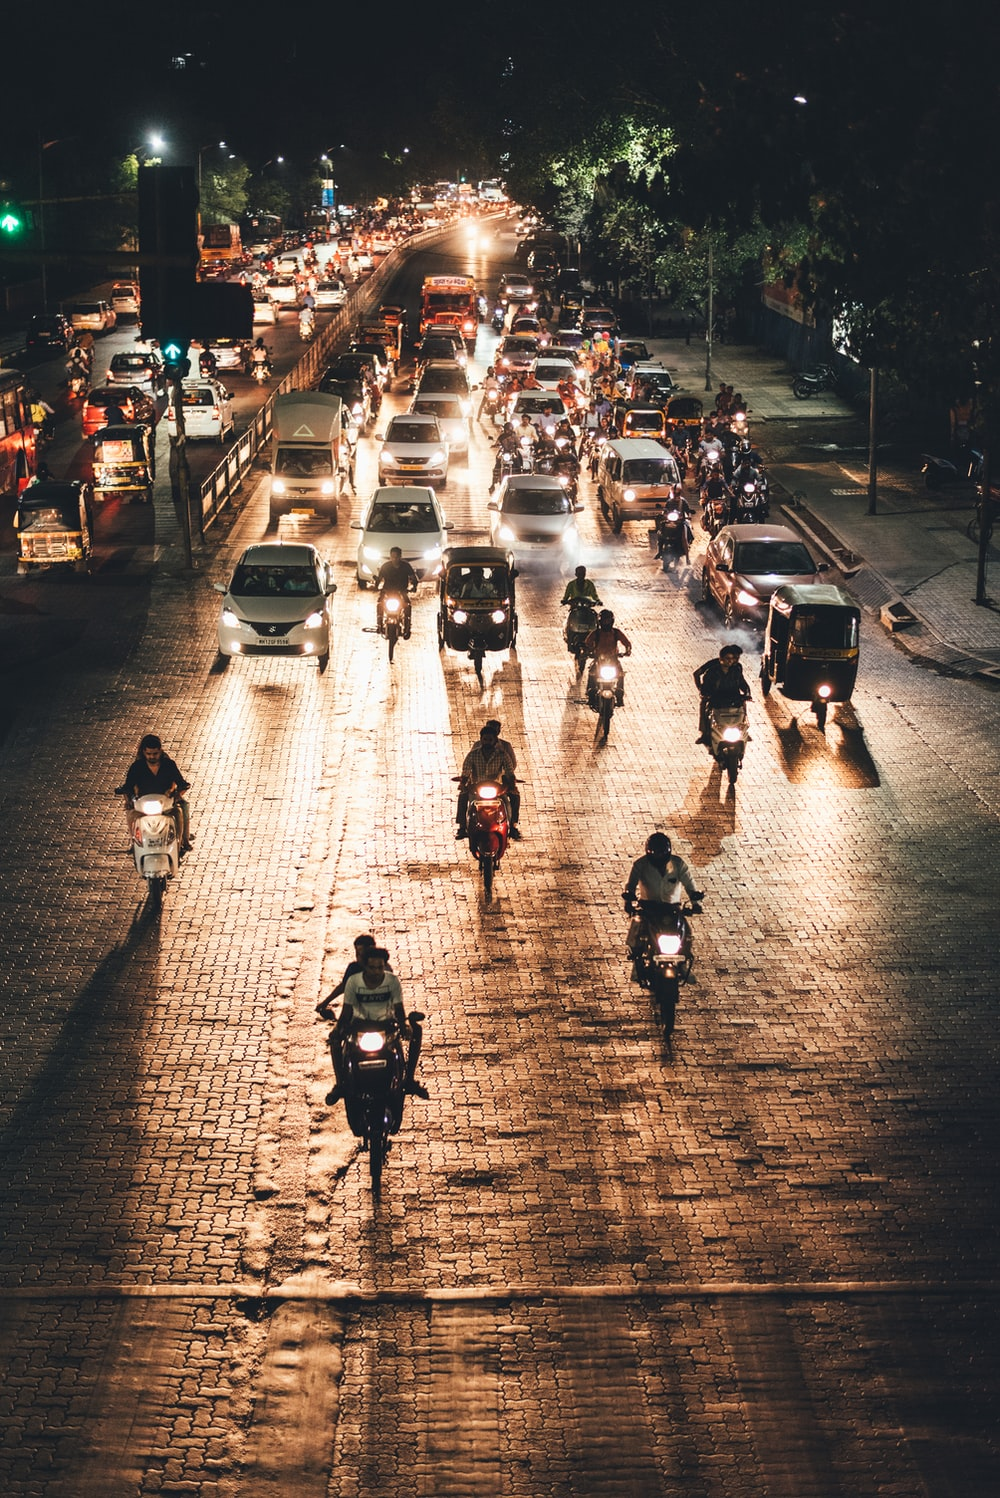 vehicles on road during night time